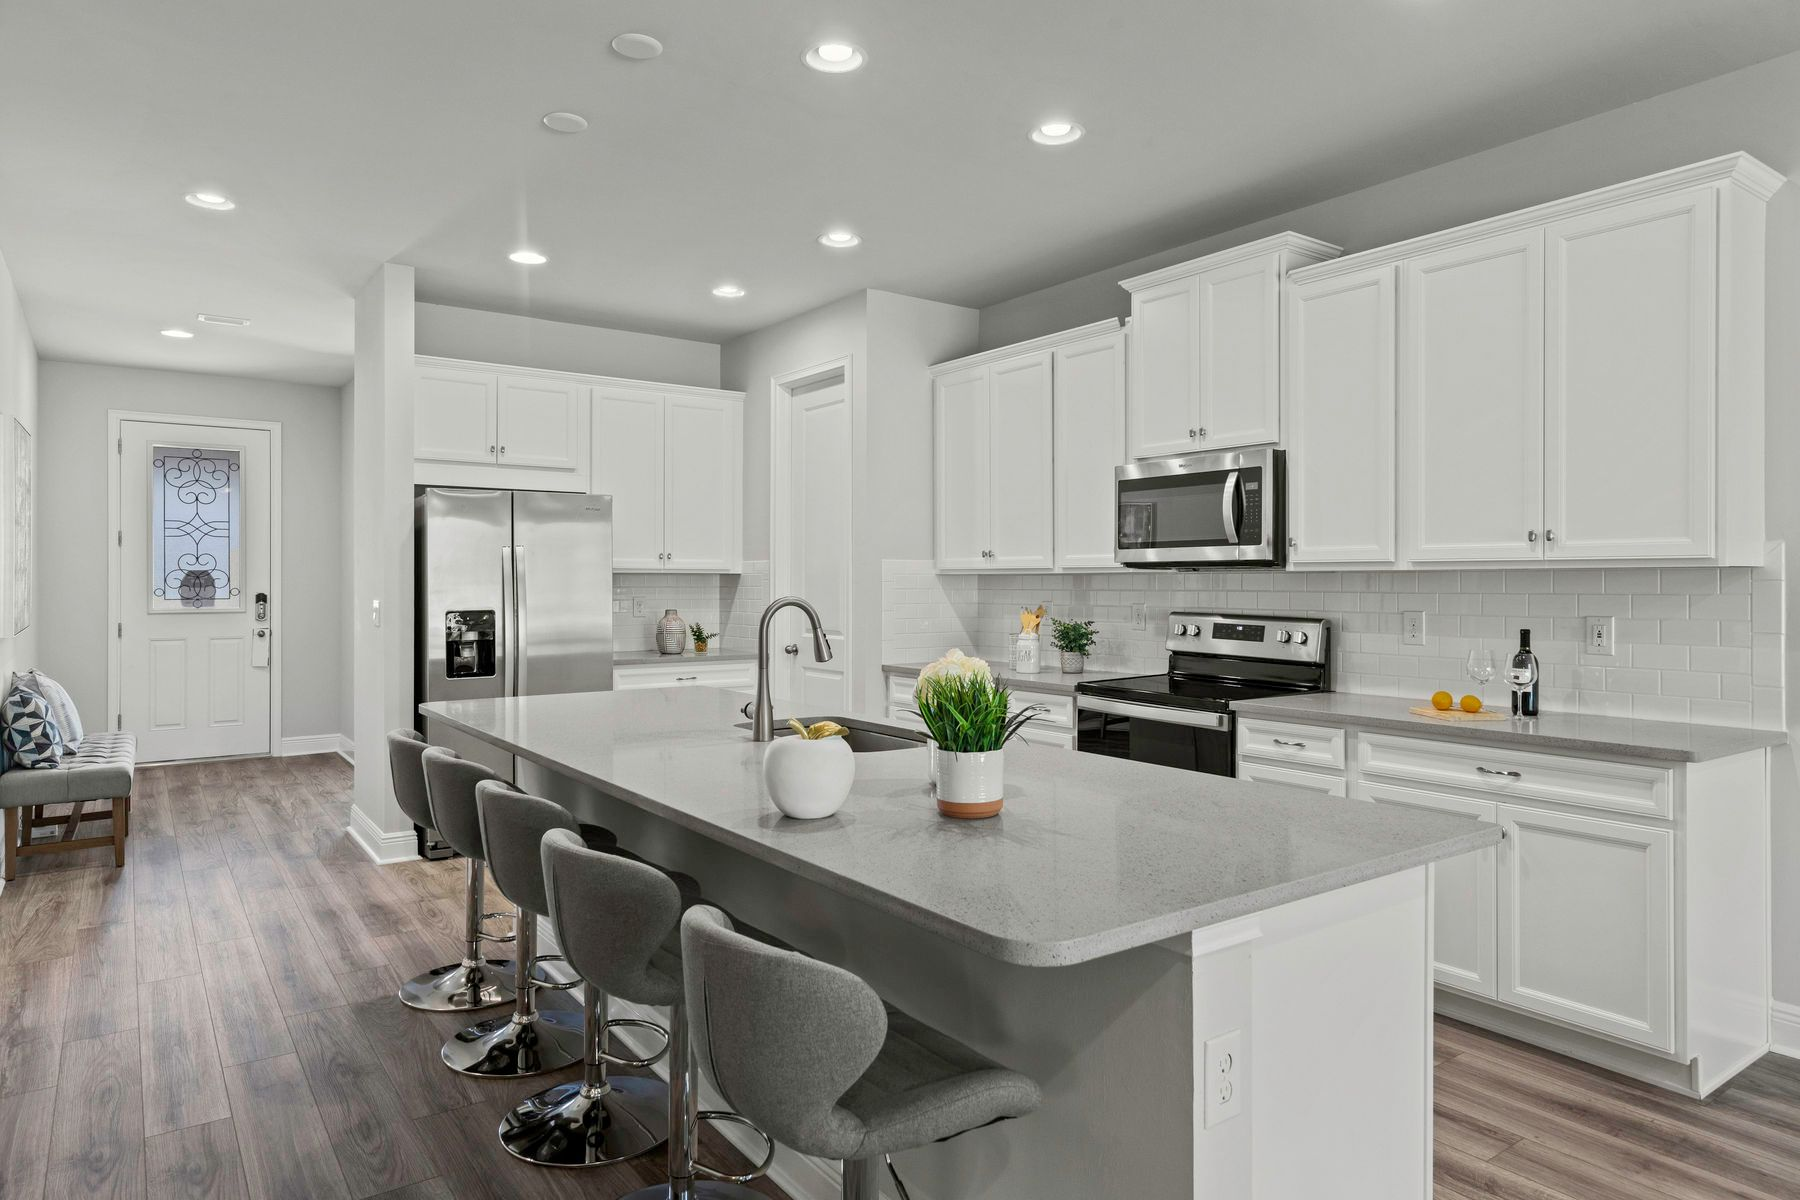 Kitchen featured in the Capstan By Mattamy Homes in Naples, FL